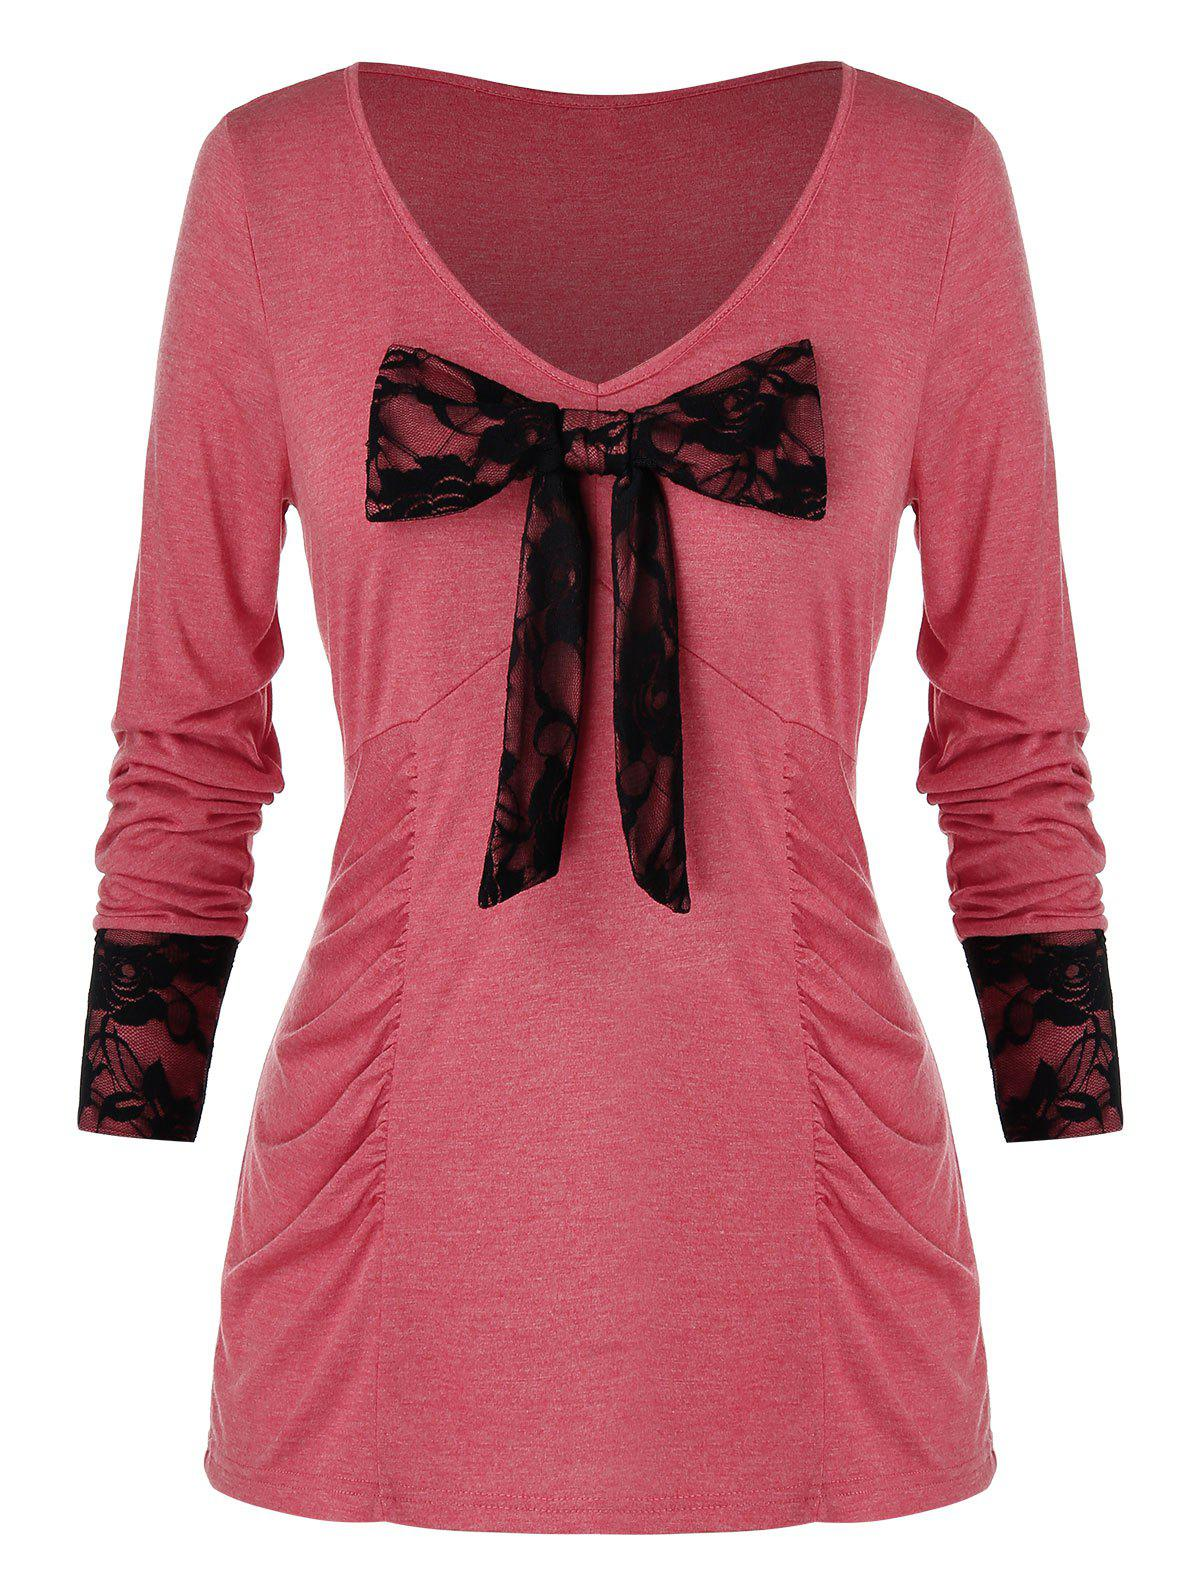 Plus Size Floral Lace Panel Bowknot T-Shirt - WATERMELON PINK L